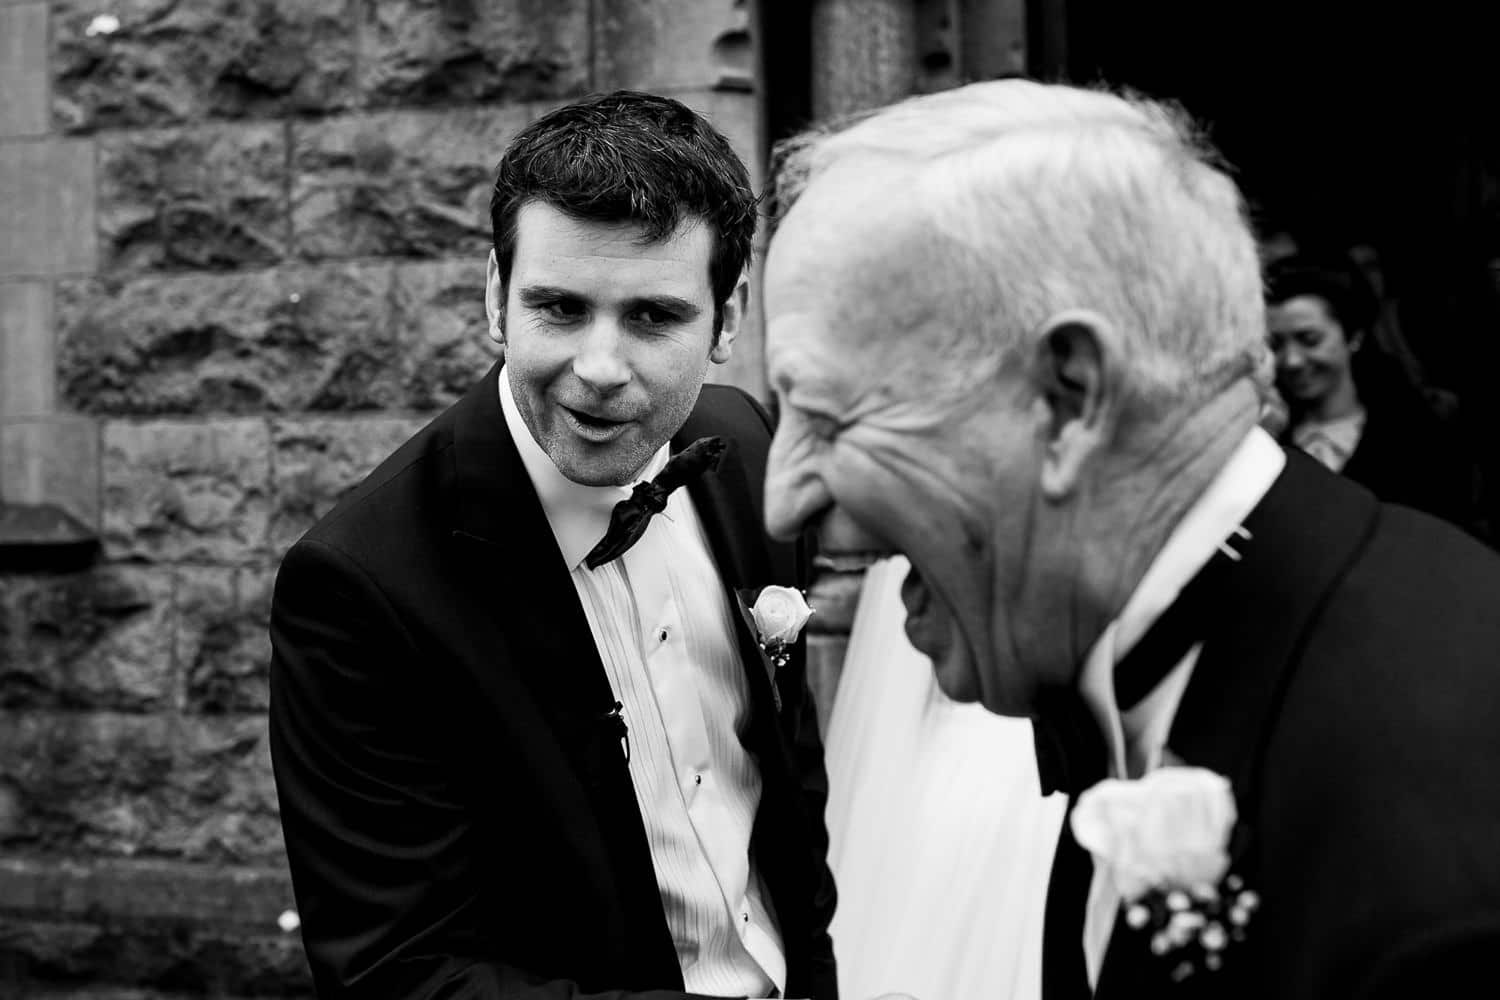 GARETH MCGAUGHEY PHOTOGRAPHY - BELLINGHAM CASTLE WEDDING 00058